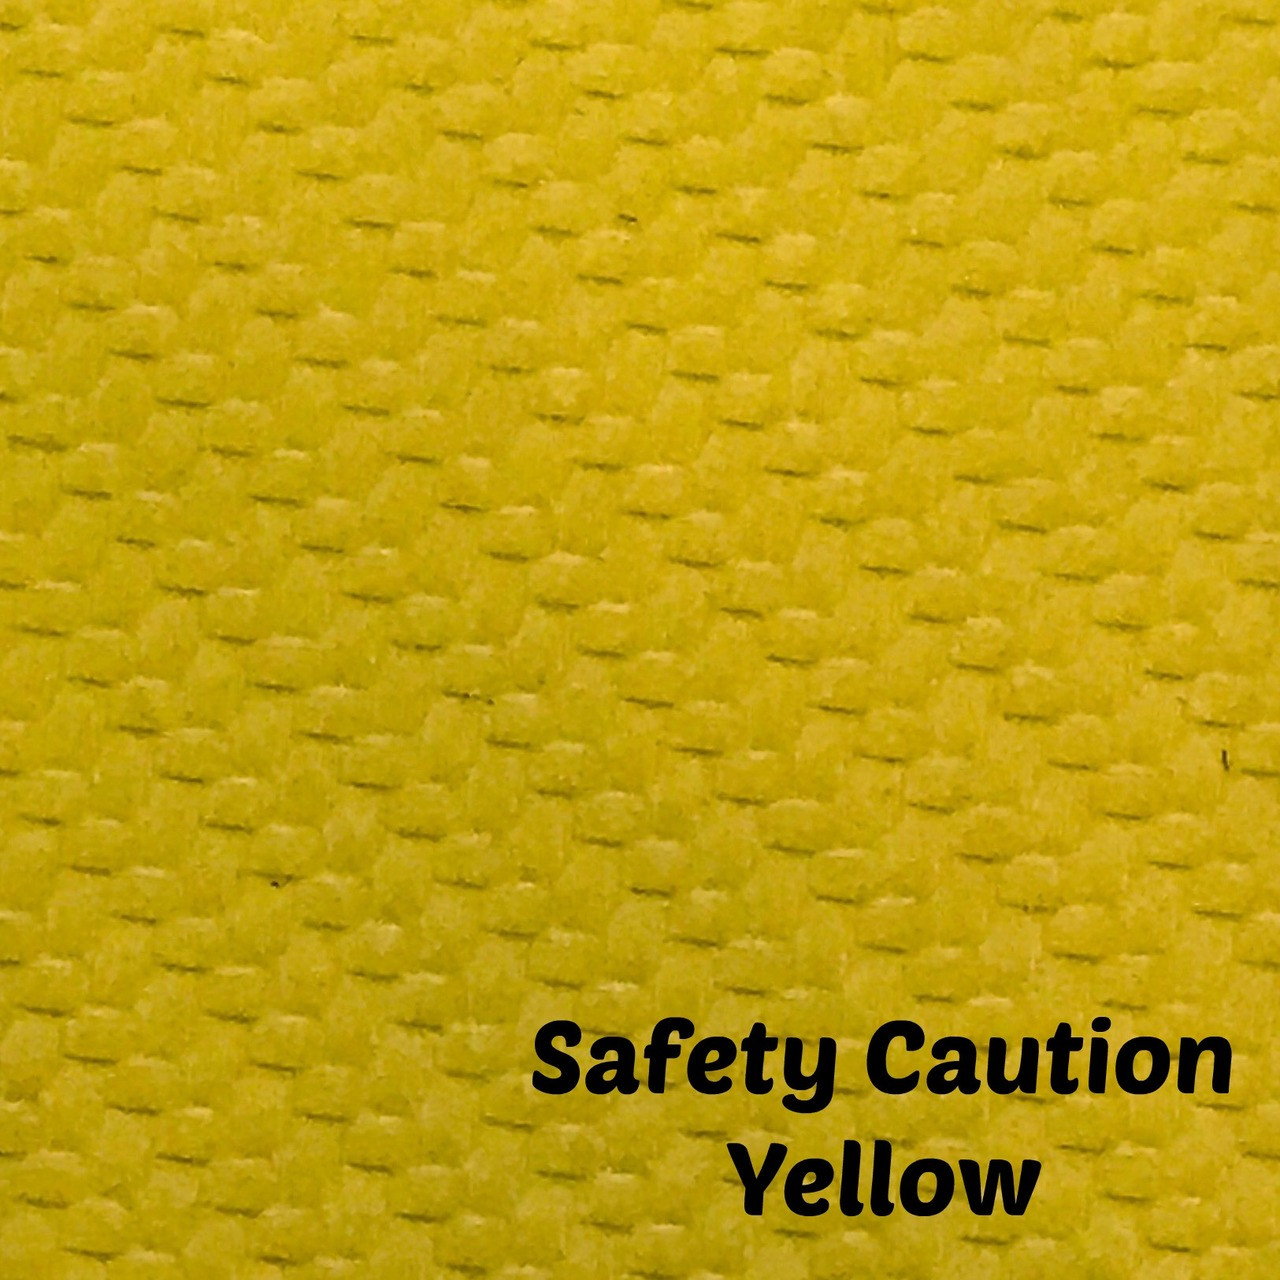 Roll Safety Caution Yellow Textured Marine Vinyl Sweet N Sassy